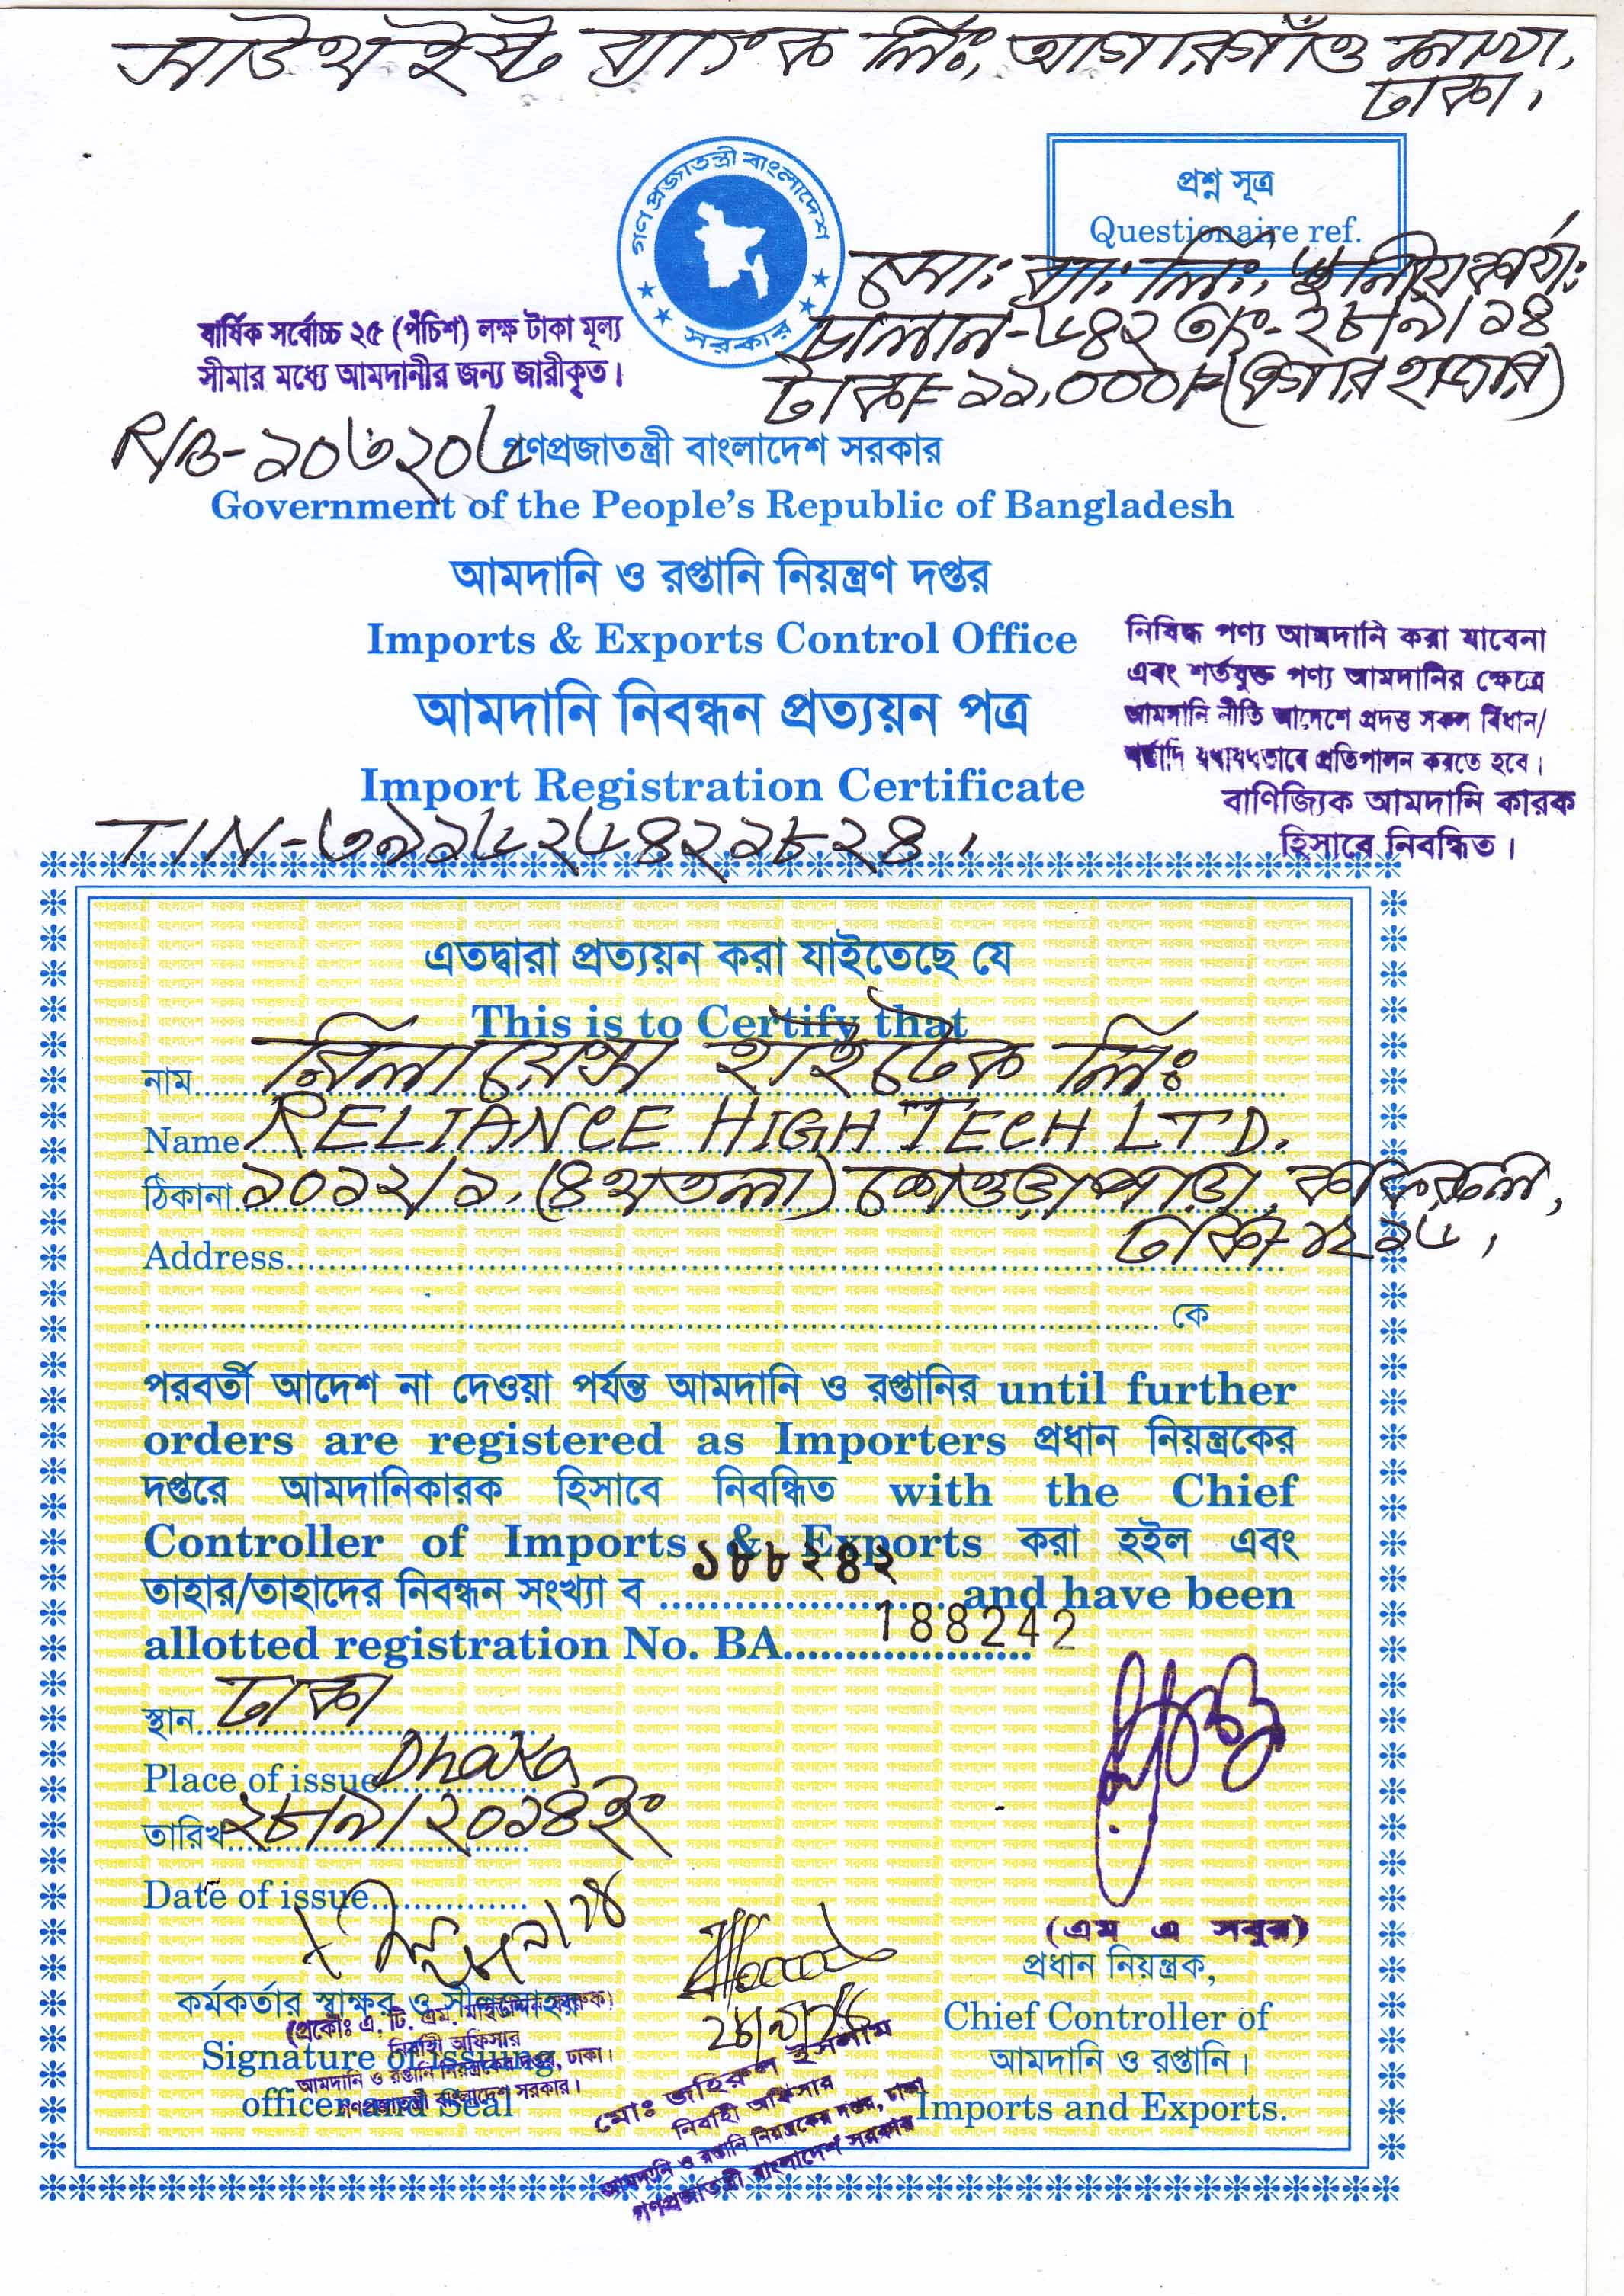 Company Papers Reliance High Tech Ltd